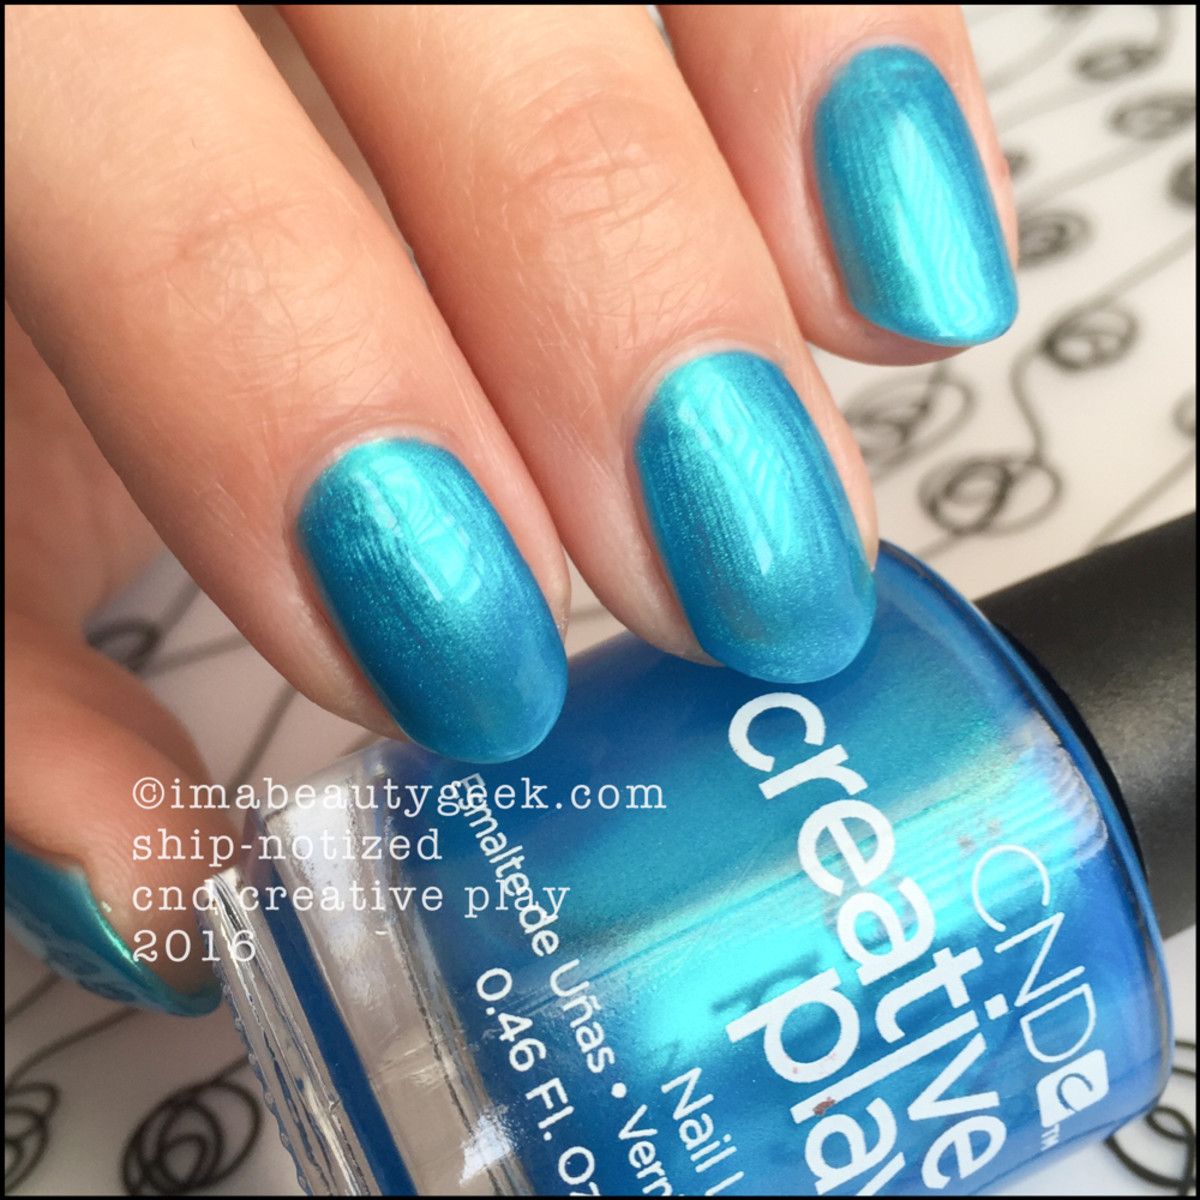 CND Creative Play ShipNotized_CND Creative Play Nail Polish Swatches